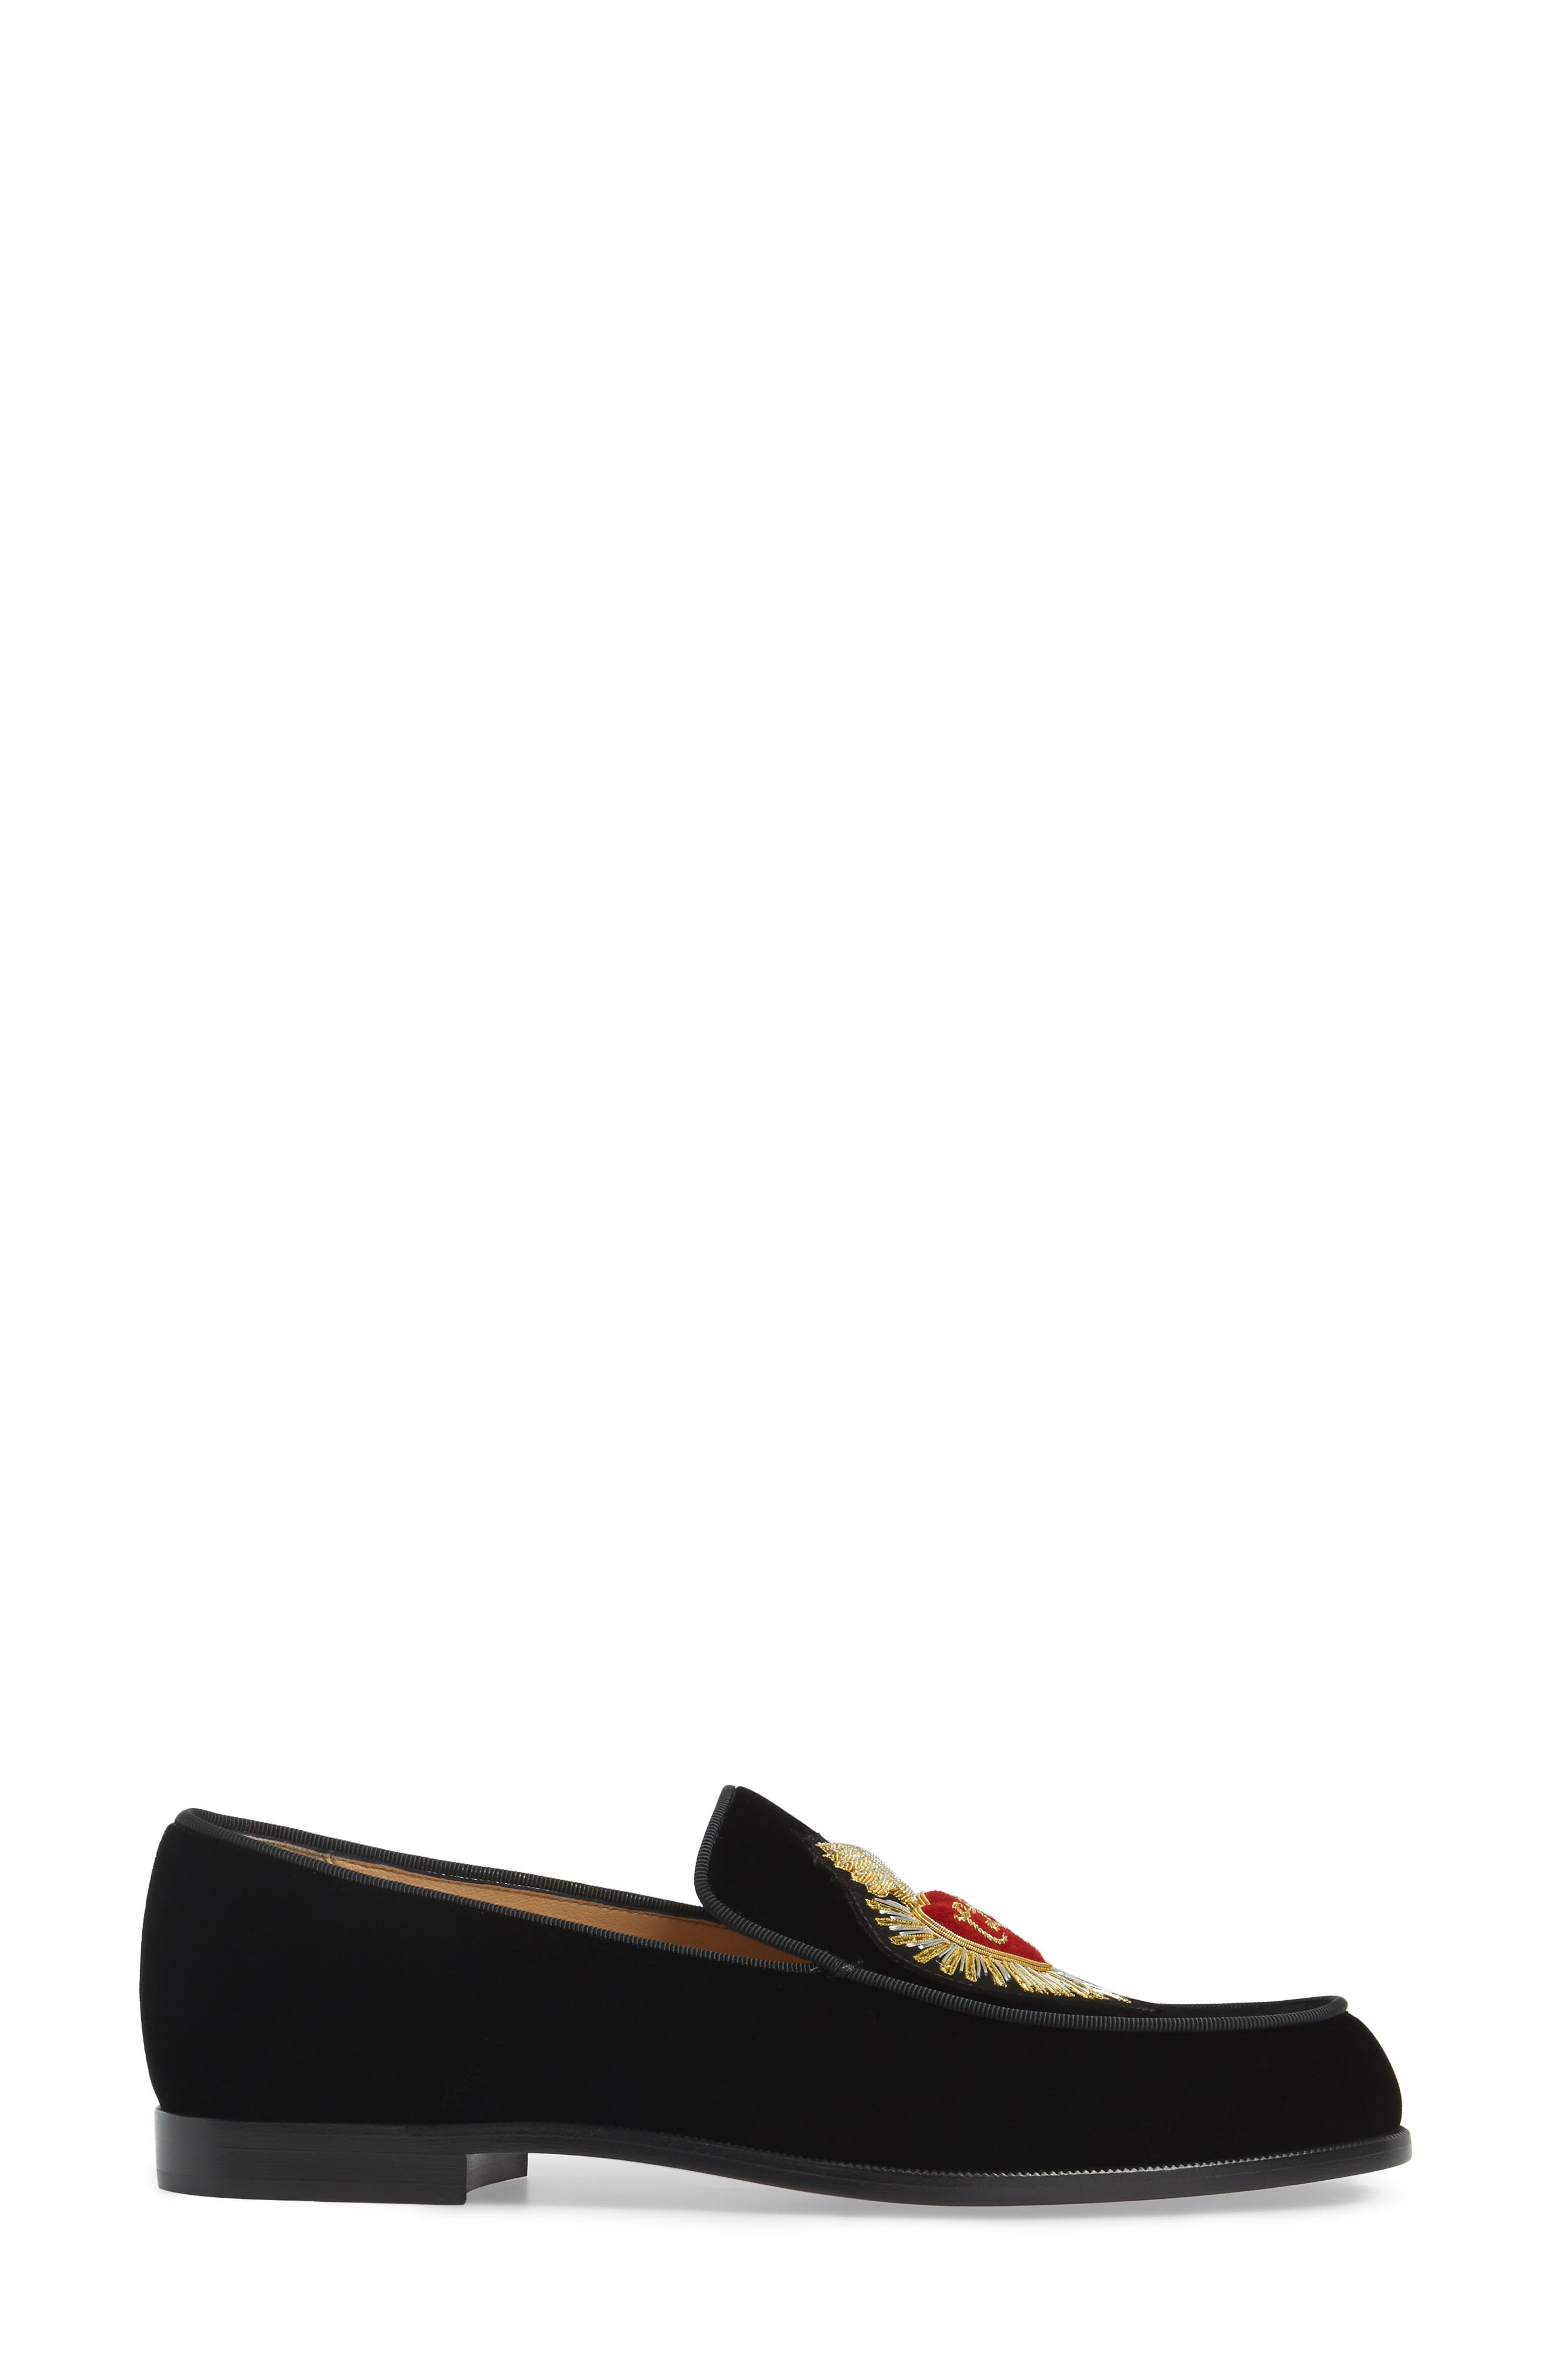 Perou Corazon Loafer,                             Alternate thumbnail 4, color,                             001